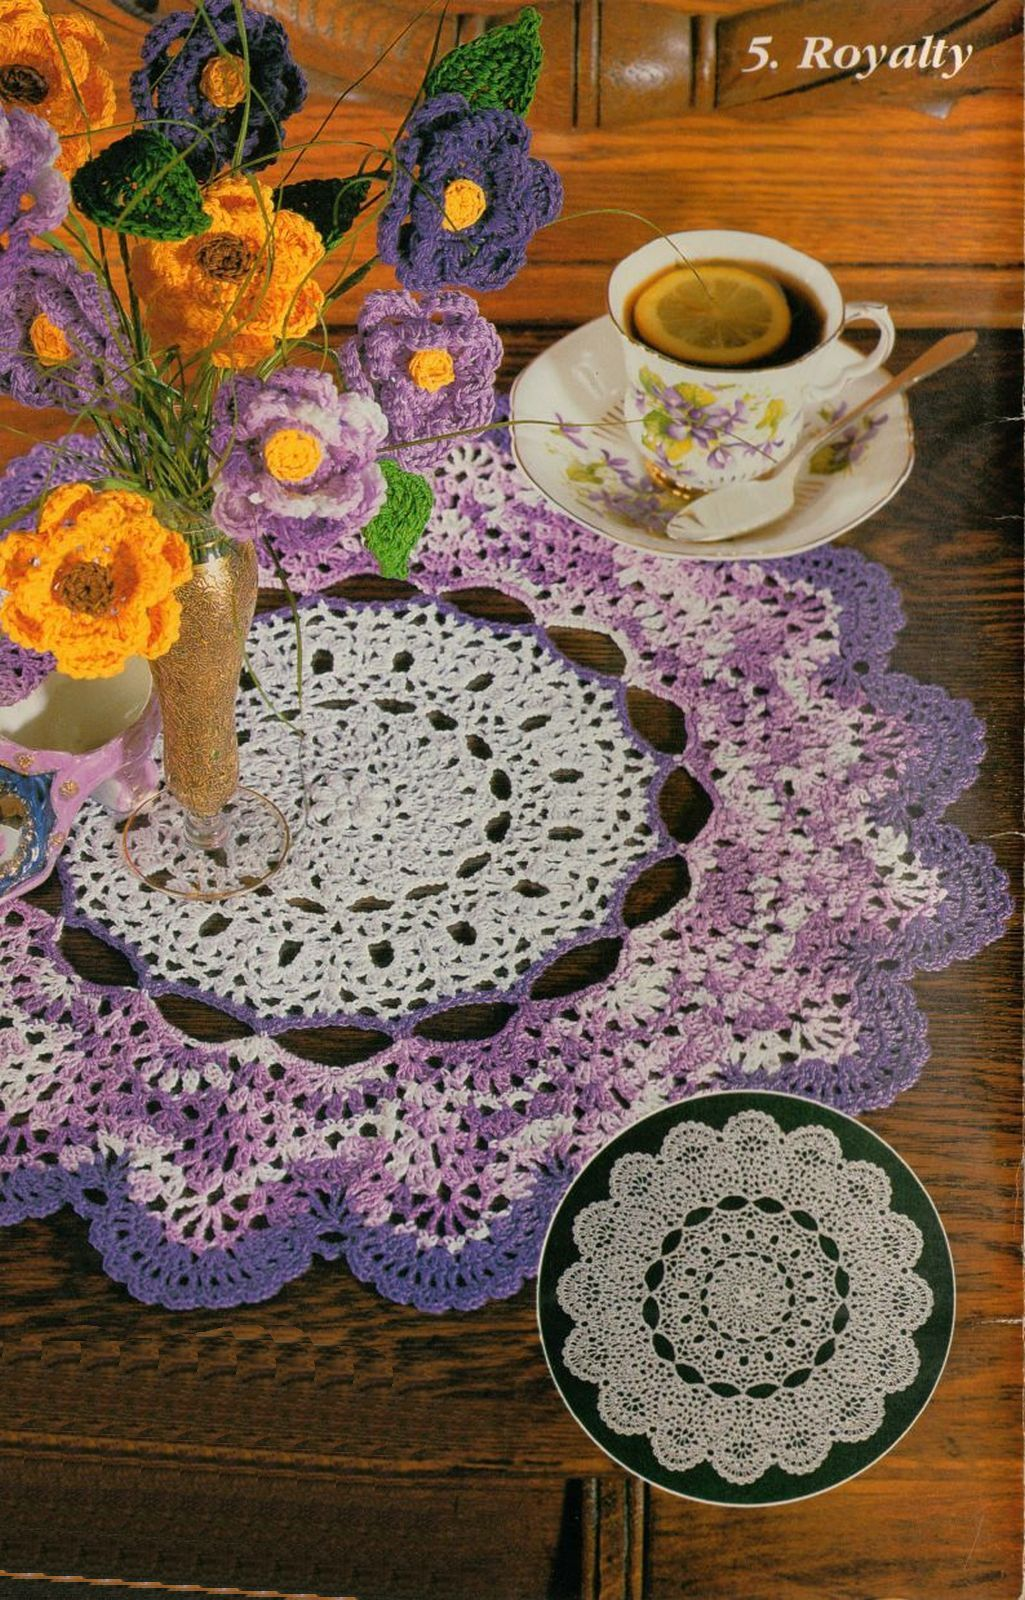 Primary image for Bouquet Roses Cameo Tiara Royalty Doily Daisy Field Table Scarf Crochet Pattern